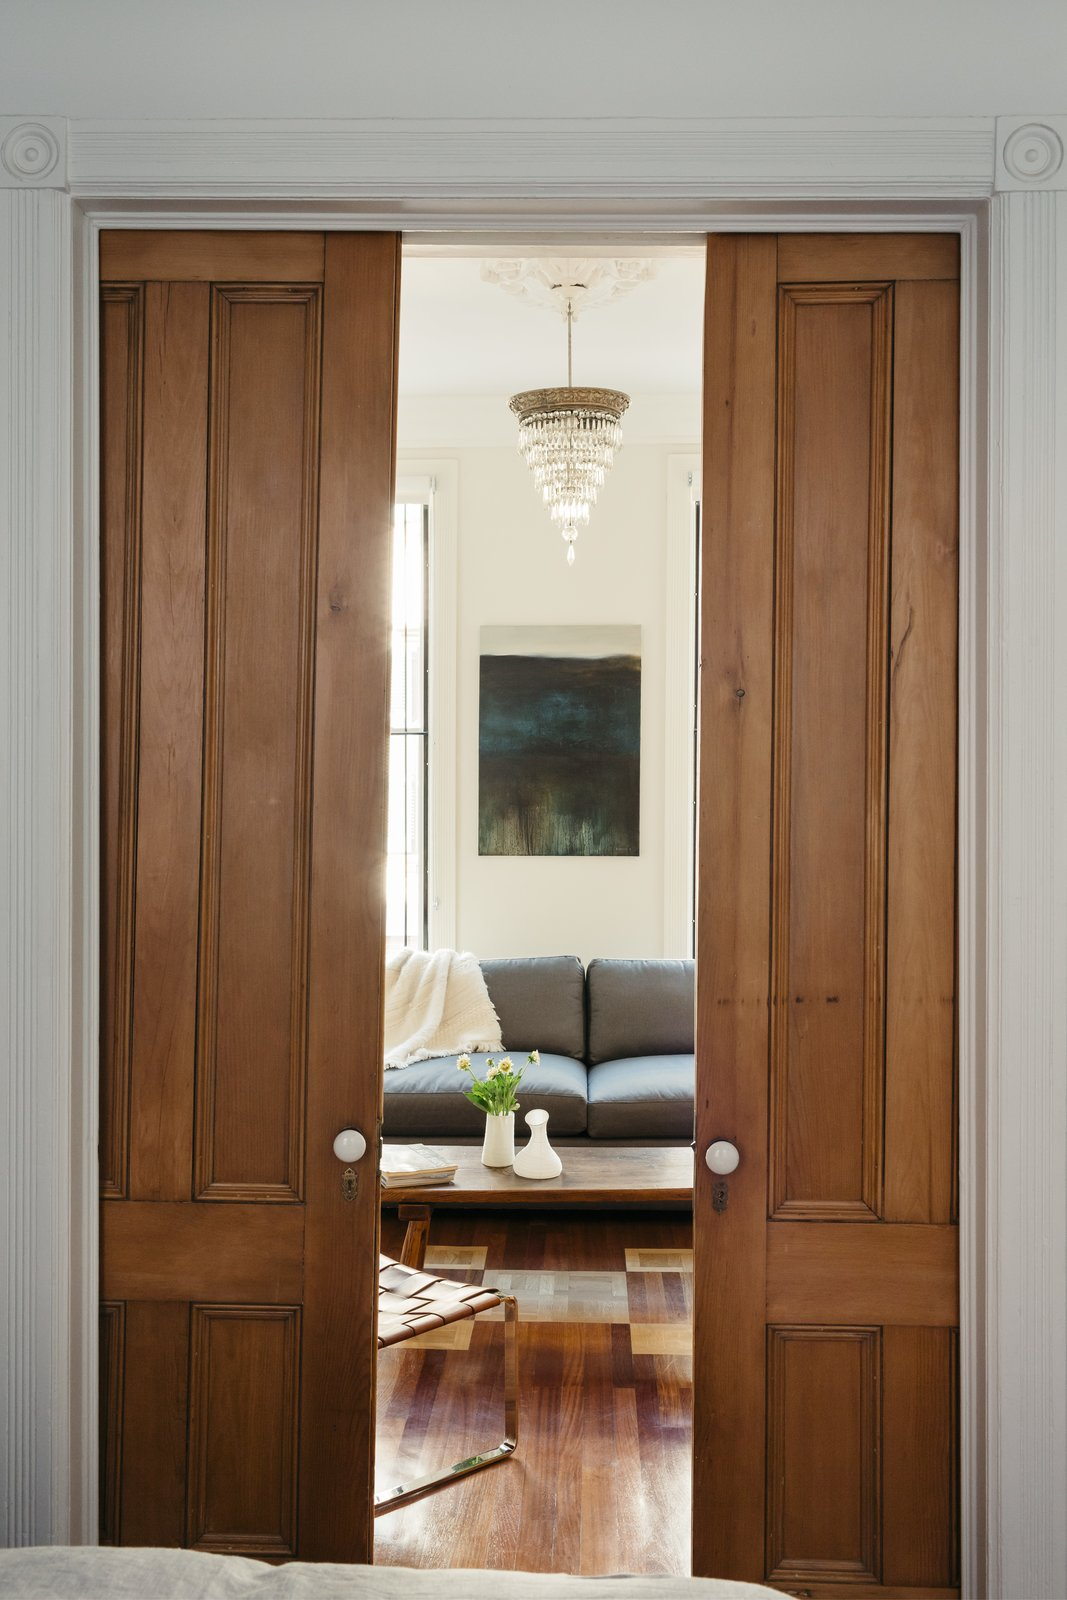 Doors, Sliding, and Wood Self-taught designer Tom Givone fixed up his 1882 row house in New York City over many years. In the parlor, he uncovered pocket doors entombed in sheetrock.  Best Doors Sliding Photos